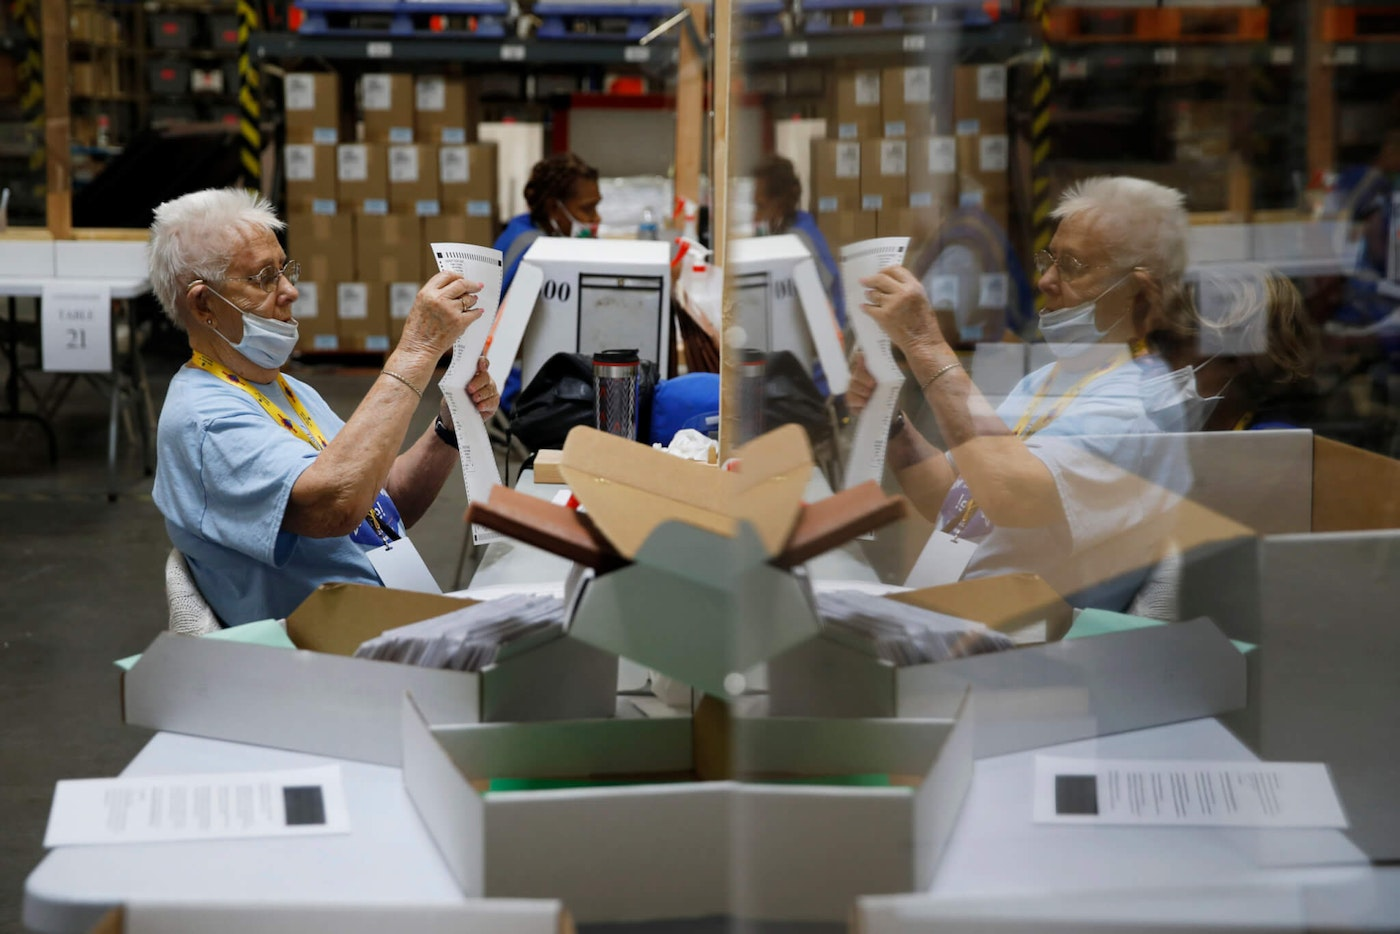 FILE - In this June 9, 2020, file photo, election workers process mail-in ballots during a nearly all-mail primary election  (AP Photo/John Locher, File)